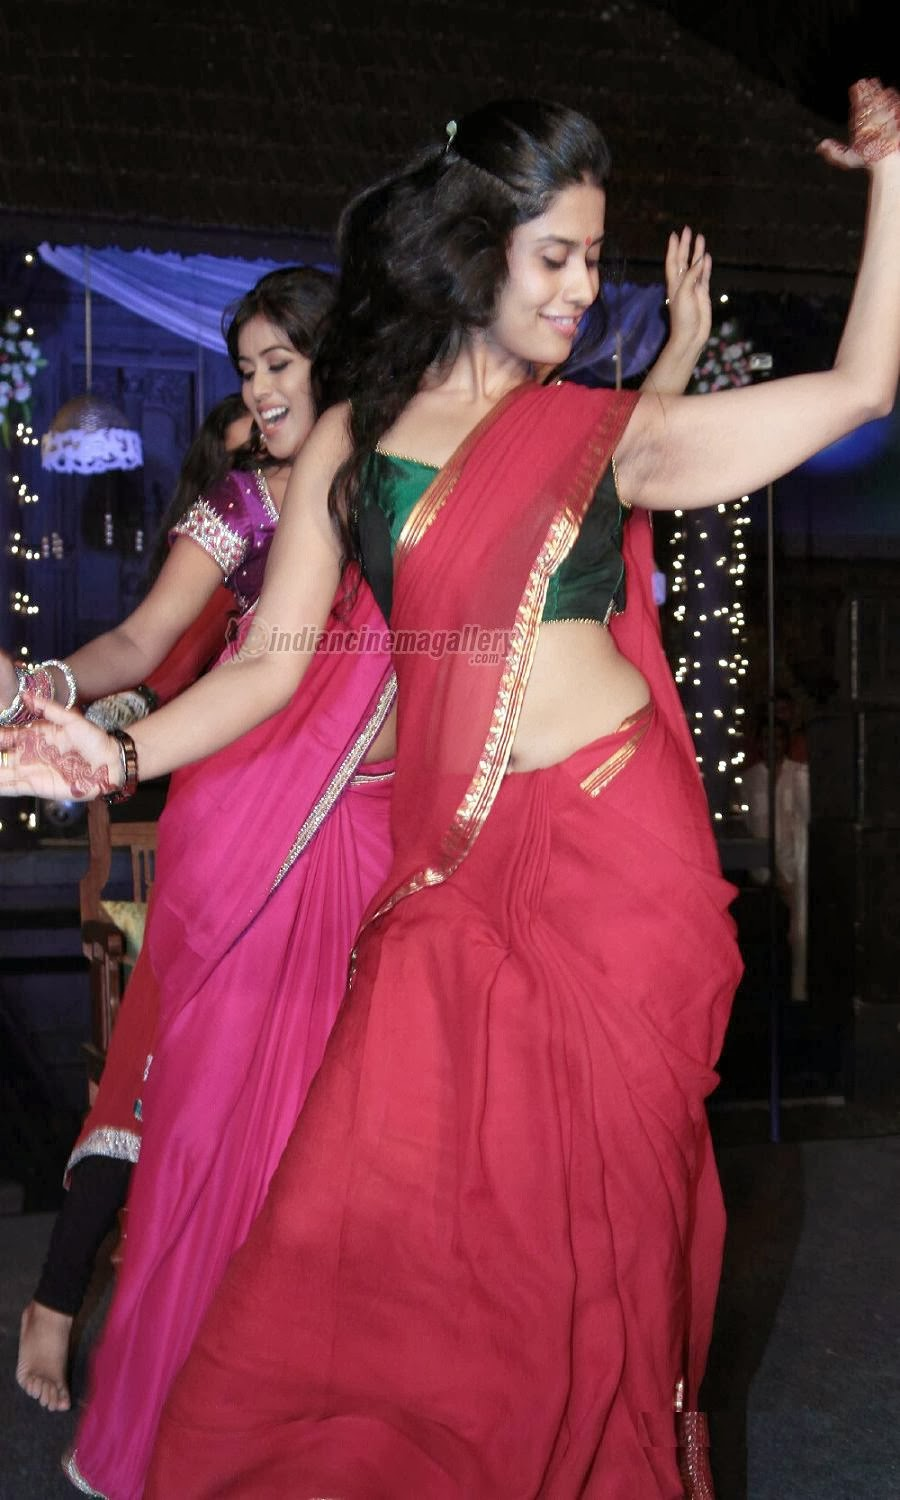 Jomon t john marriage dance erte